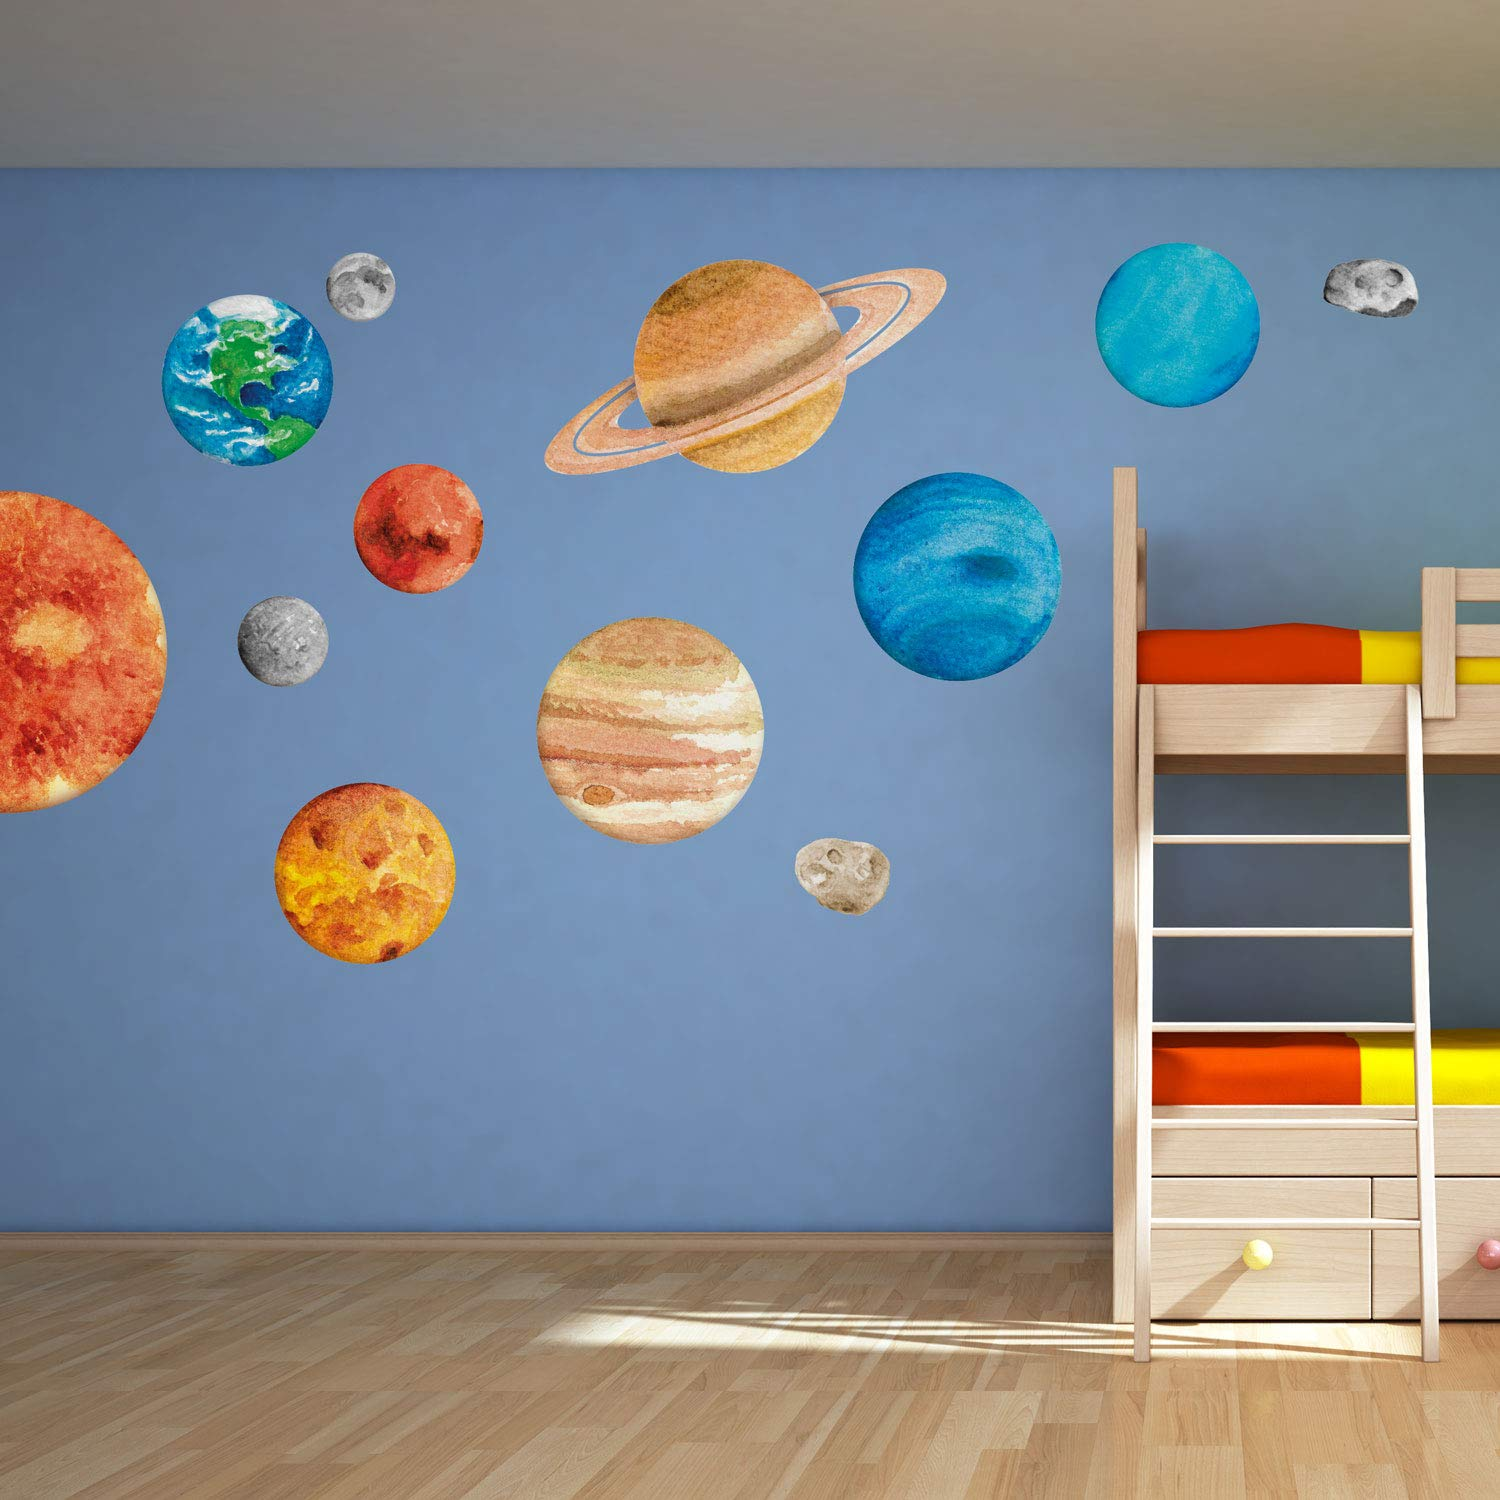 Solar System Wall Decal  Space Wall Decals  Perfect for a Creating a  Space Themed Room